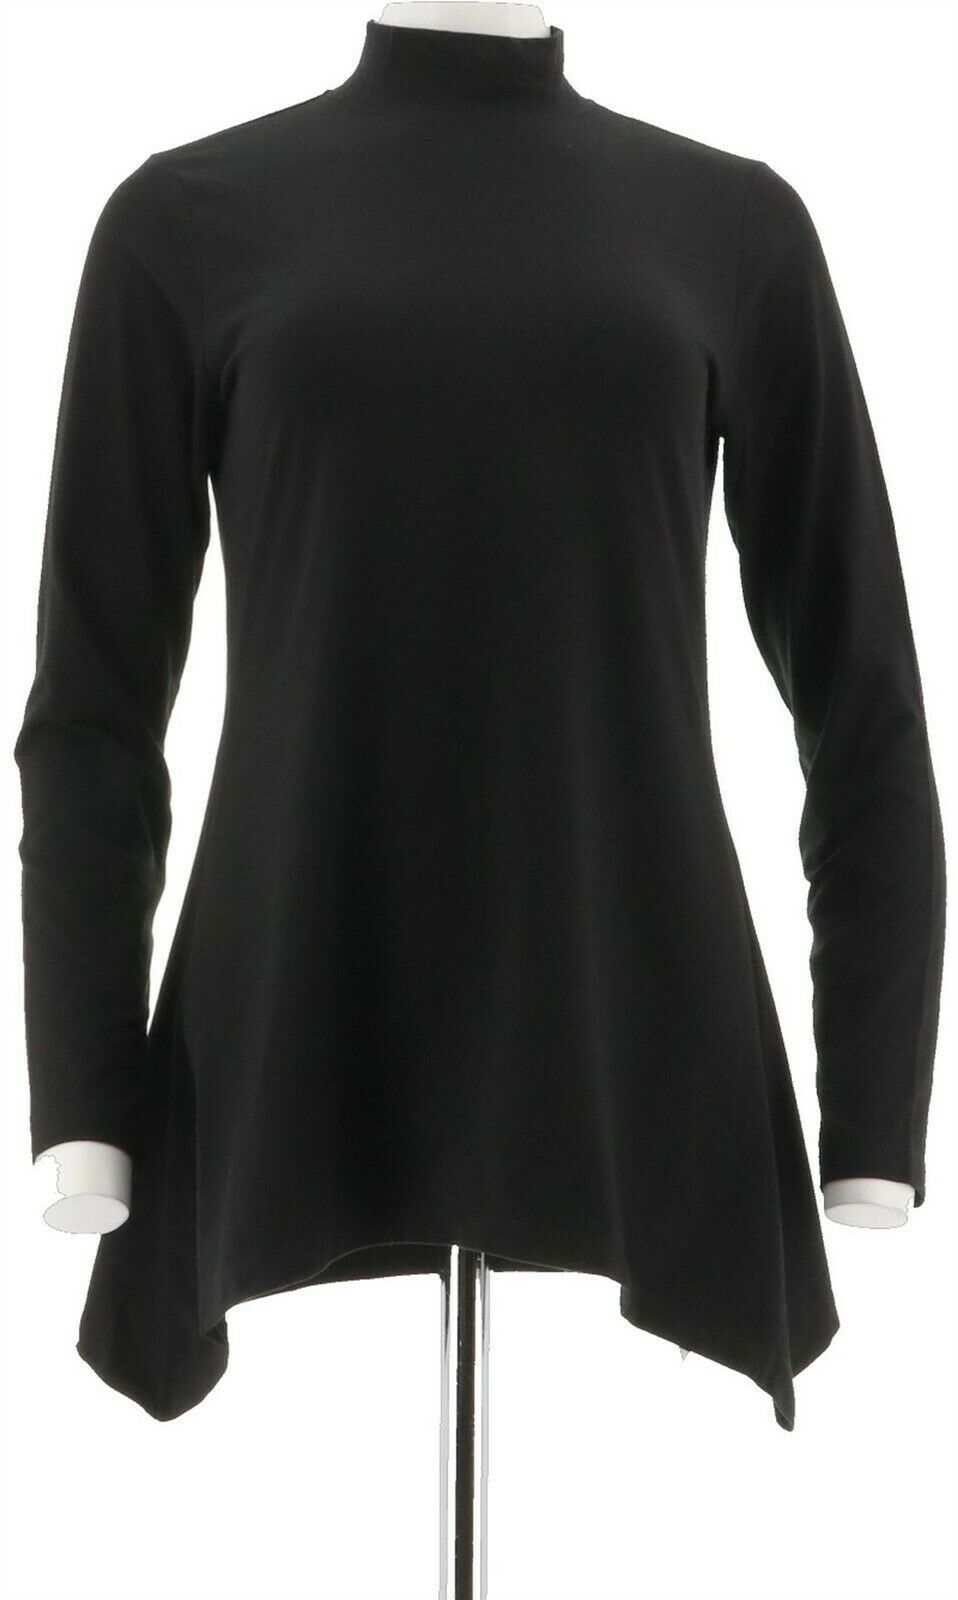 Primary image for Denim Co Long Slvs Mock Neck Perfect Jersey Trapeze Top Black XL NEW A296463